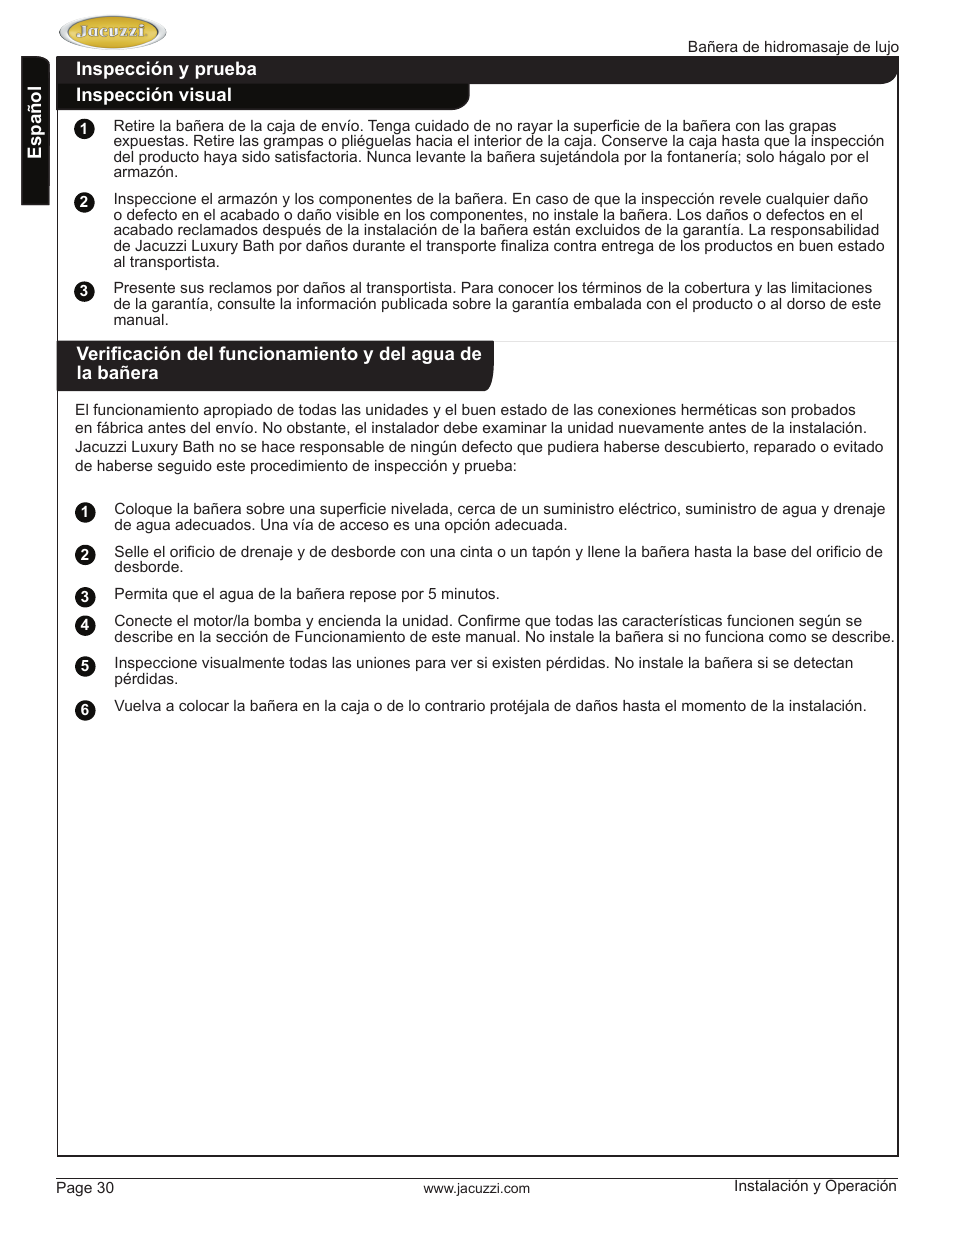 Funcionamiento Del Jacuzzi.Jacuzzi Hd84000 User Manual Page 30 72